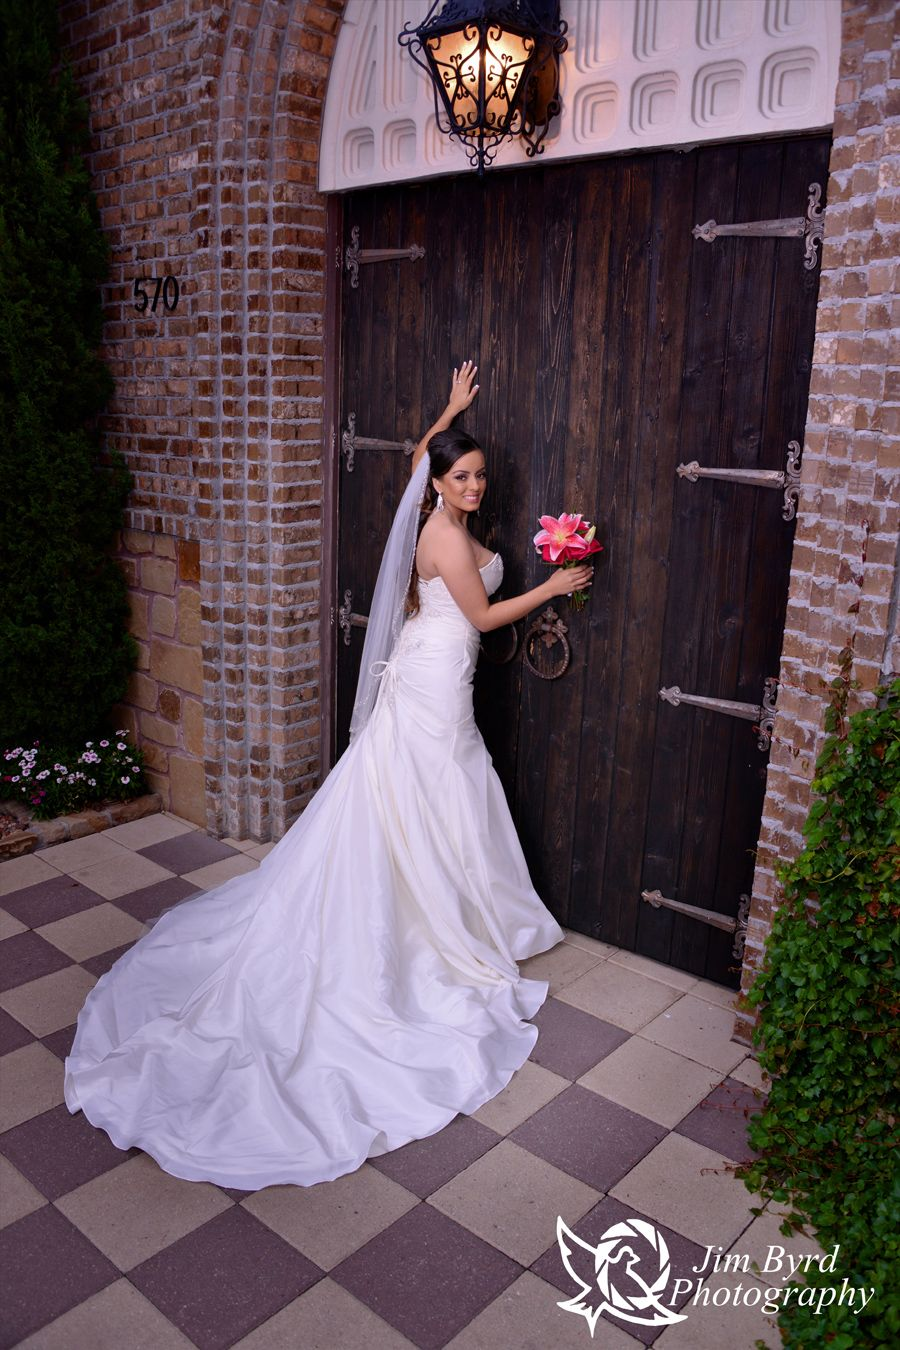 Lovely bride at Aristide Event Center in Mansfield, TX ...